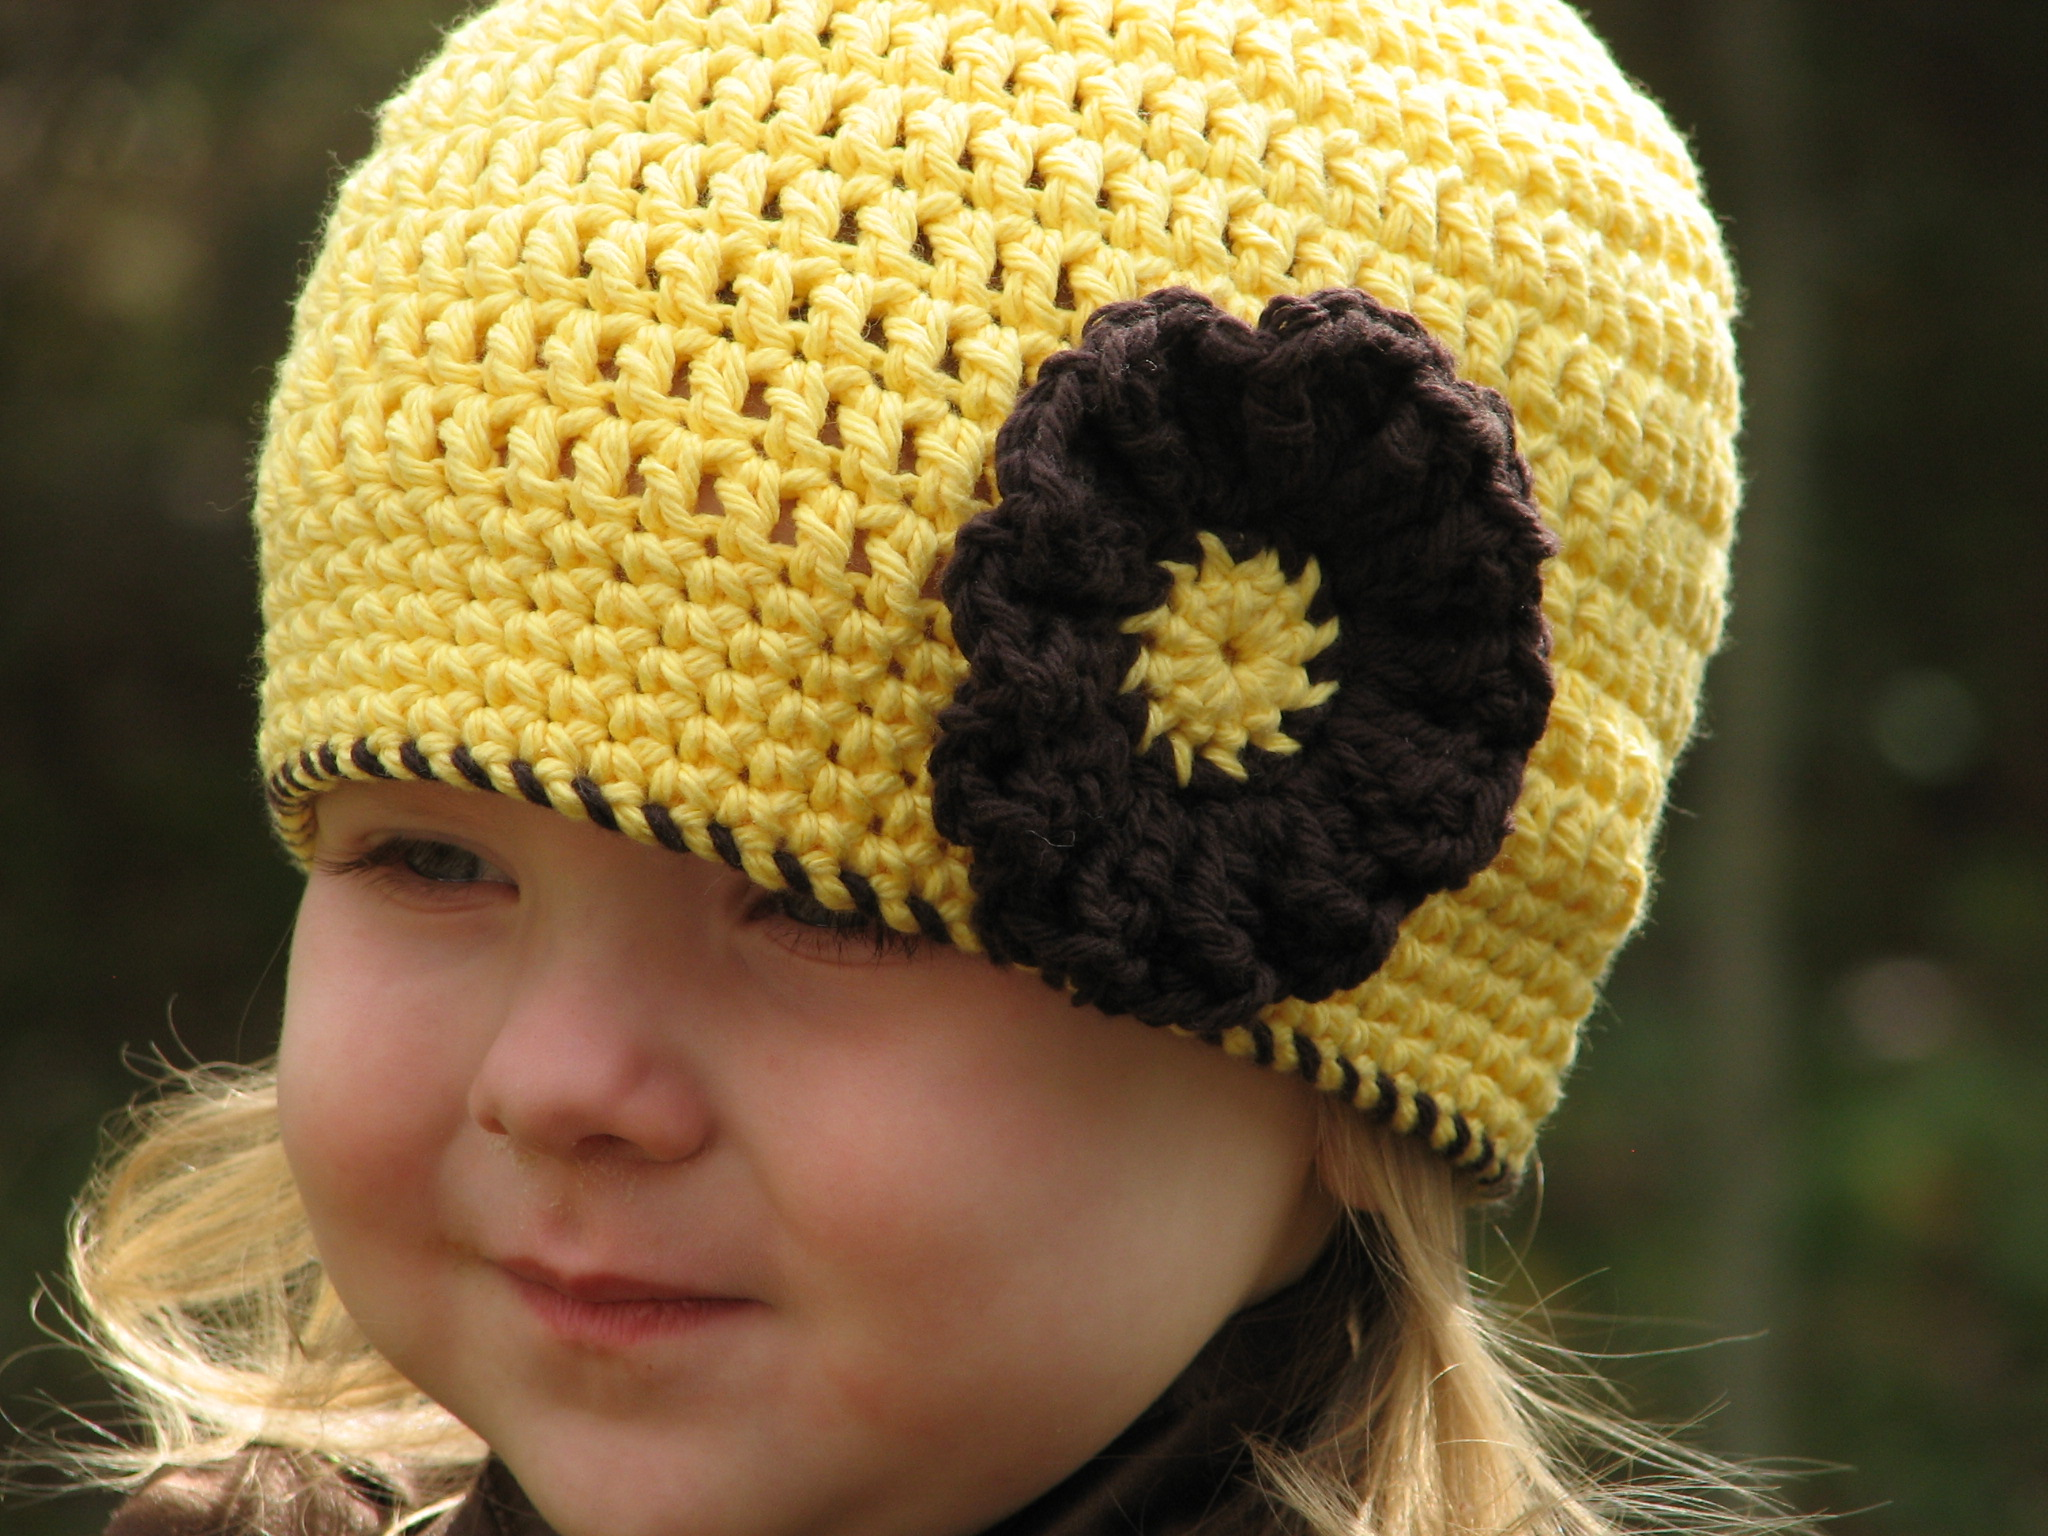 Crochet Baby Hat Pattern Beginner : Sunshine Beanie Crochet Pattern Giveaway - Ambassador ...